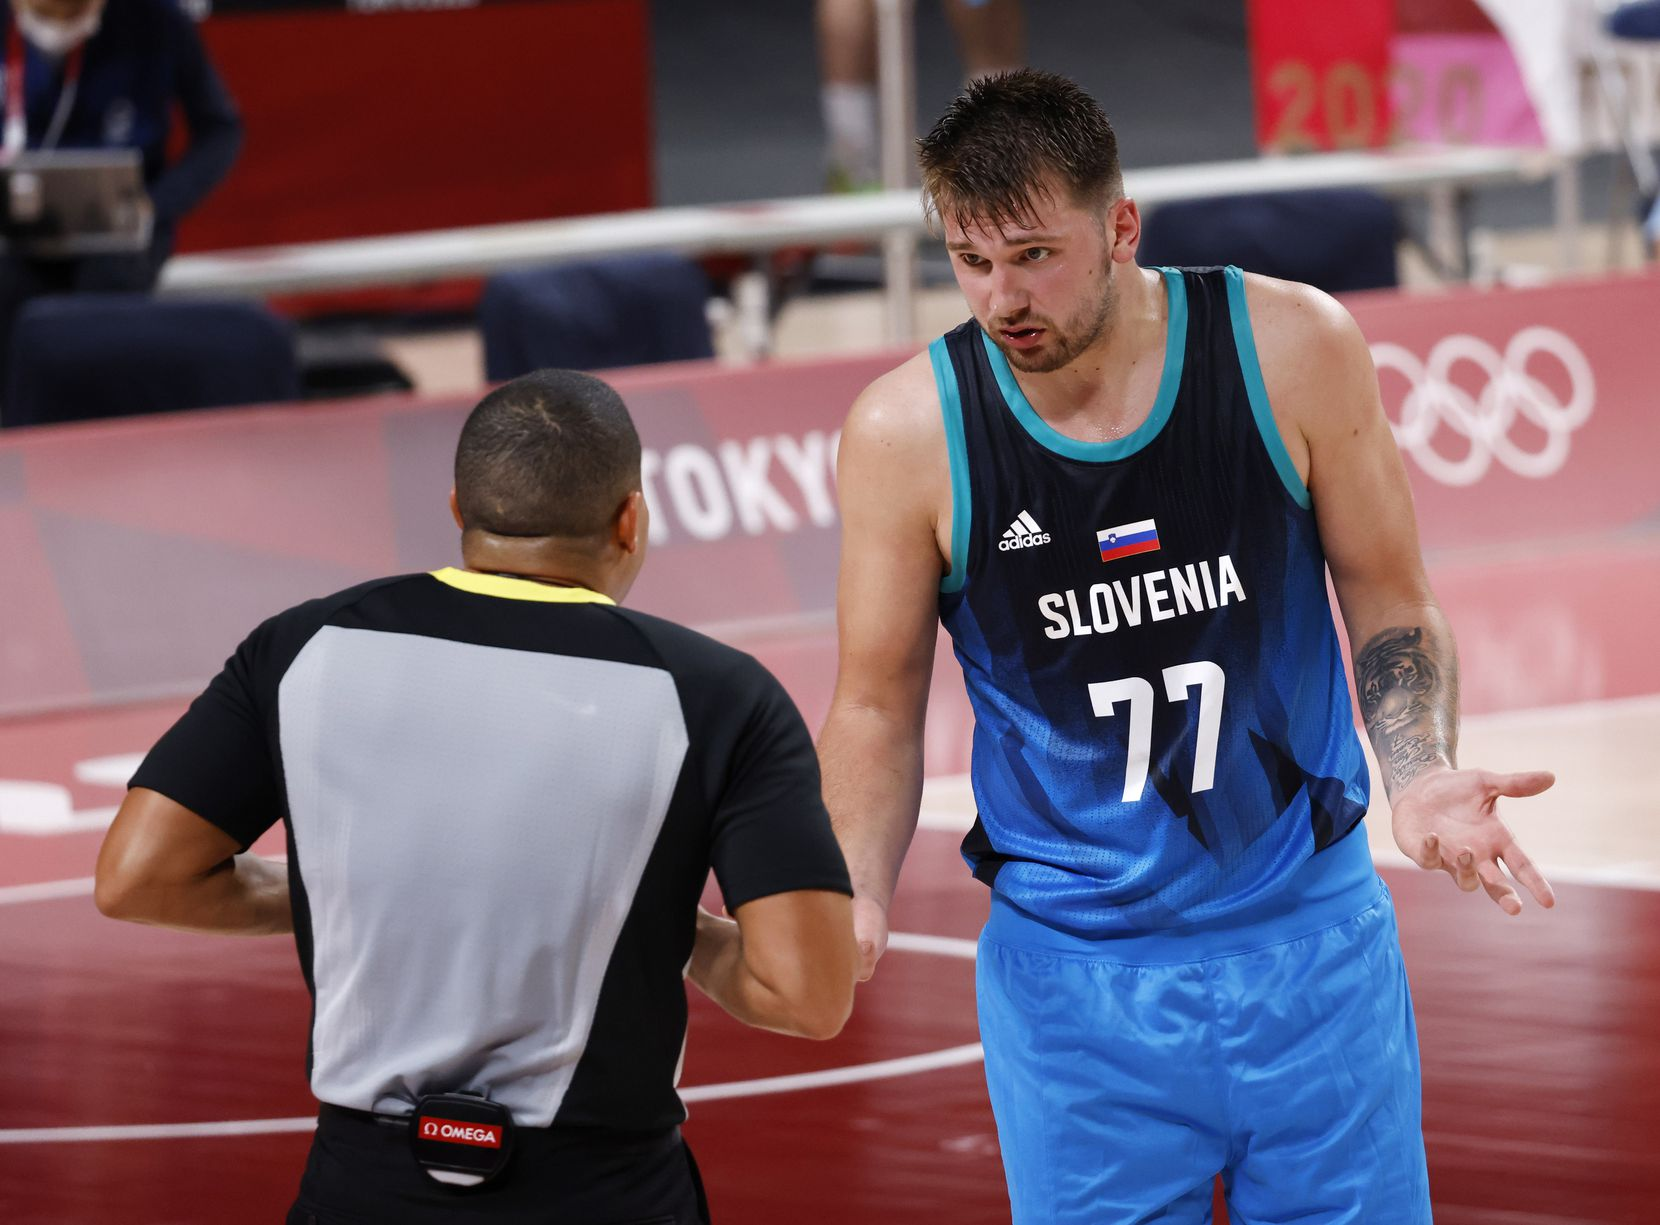 Slovenia's Luka Doncic (77) talks to a referee in the second half of play in a game against Argentina during the postponed 2020 Tokyo Olympics at Saitama Super Arena on Monday, July 26, 2021, in Saitama, Japan. Slovenia defeated Argentina 118-100. (Vernon Bryant/The Dallas Morning News)